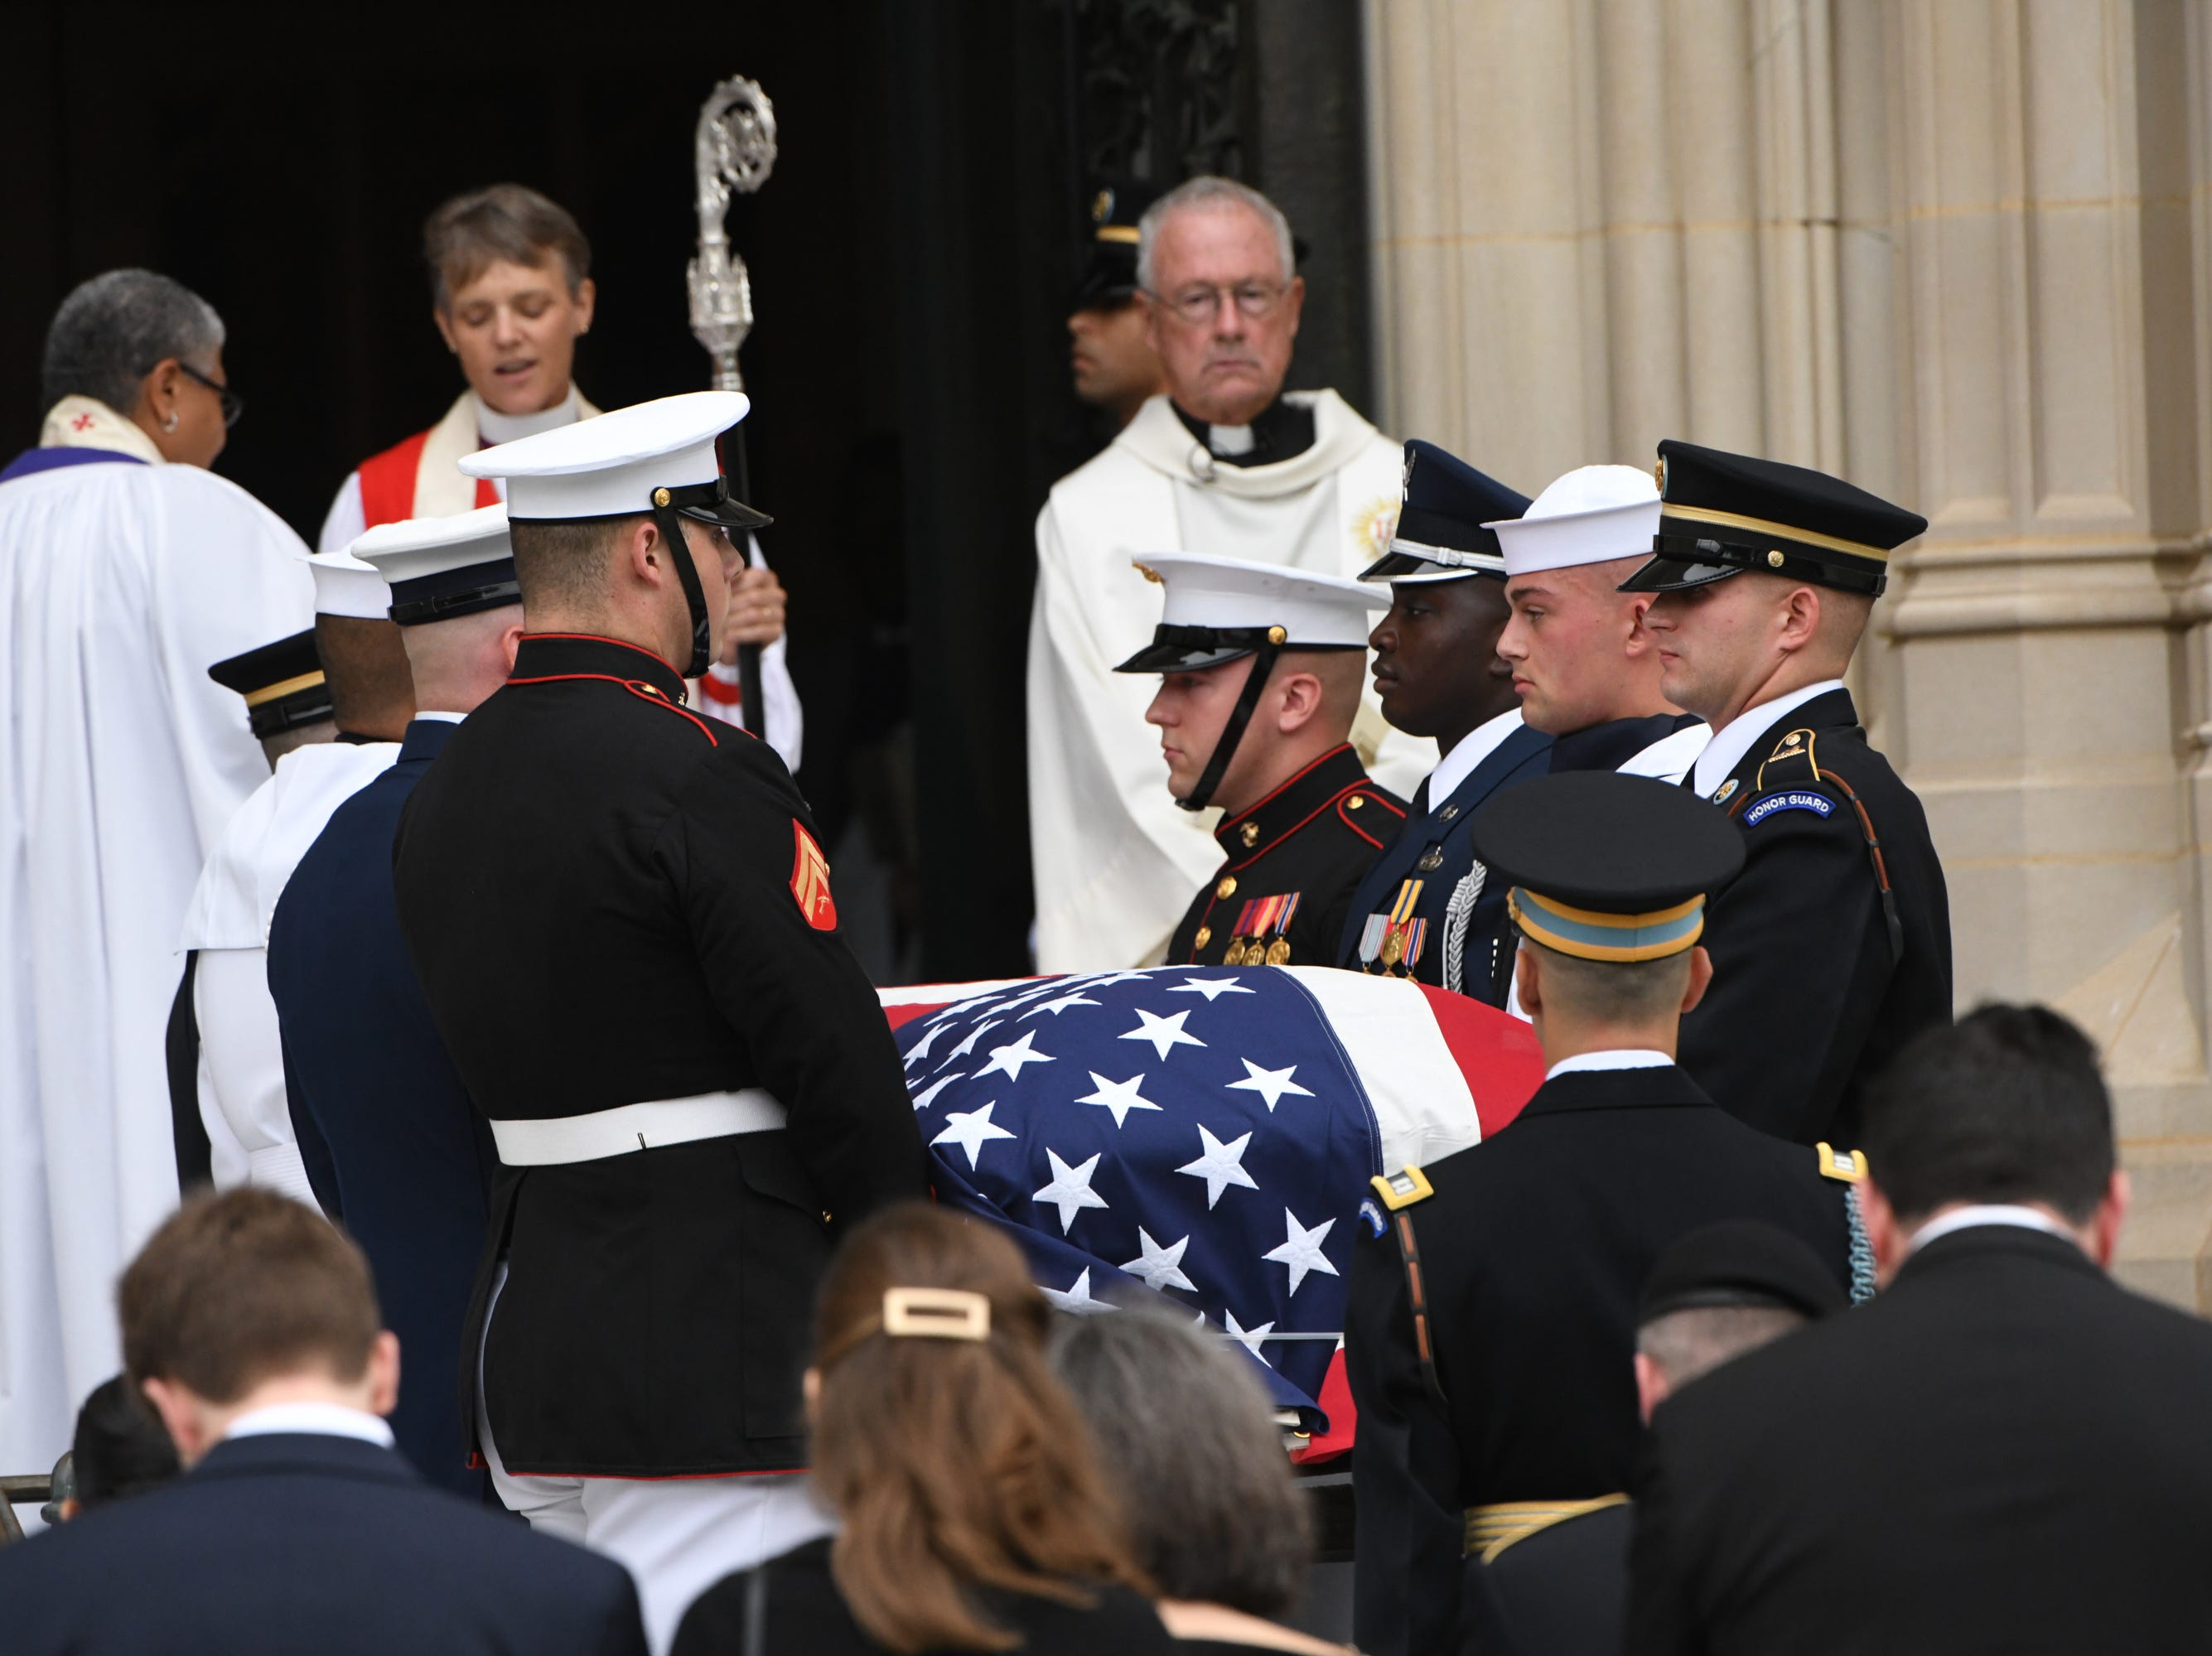 The casket of John McCain is carried into the National Cathedral in Washington for his memorial service on Sept. 1, 2018.  Sen. McCain died on Aug. 25.